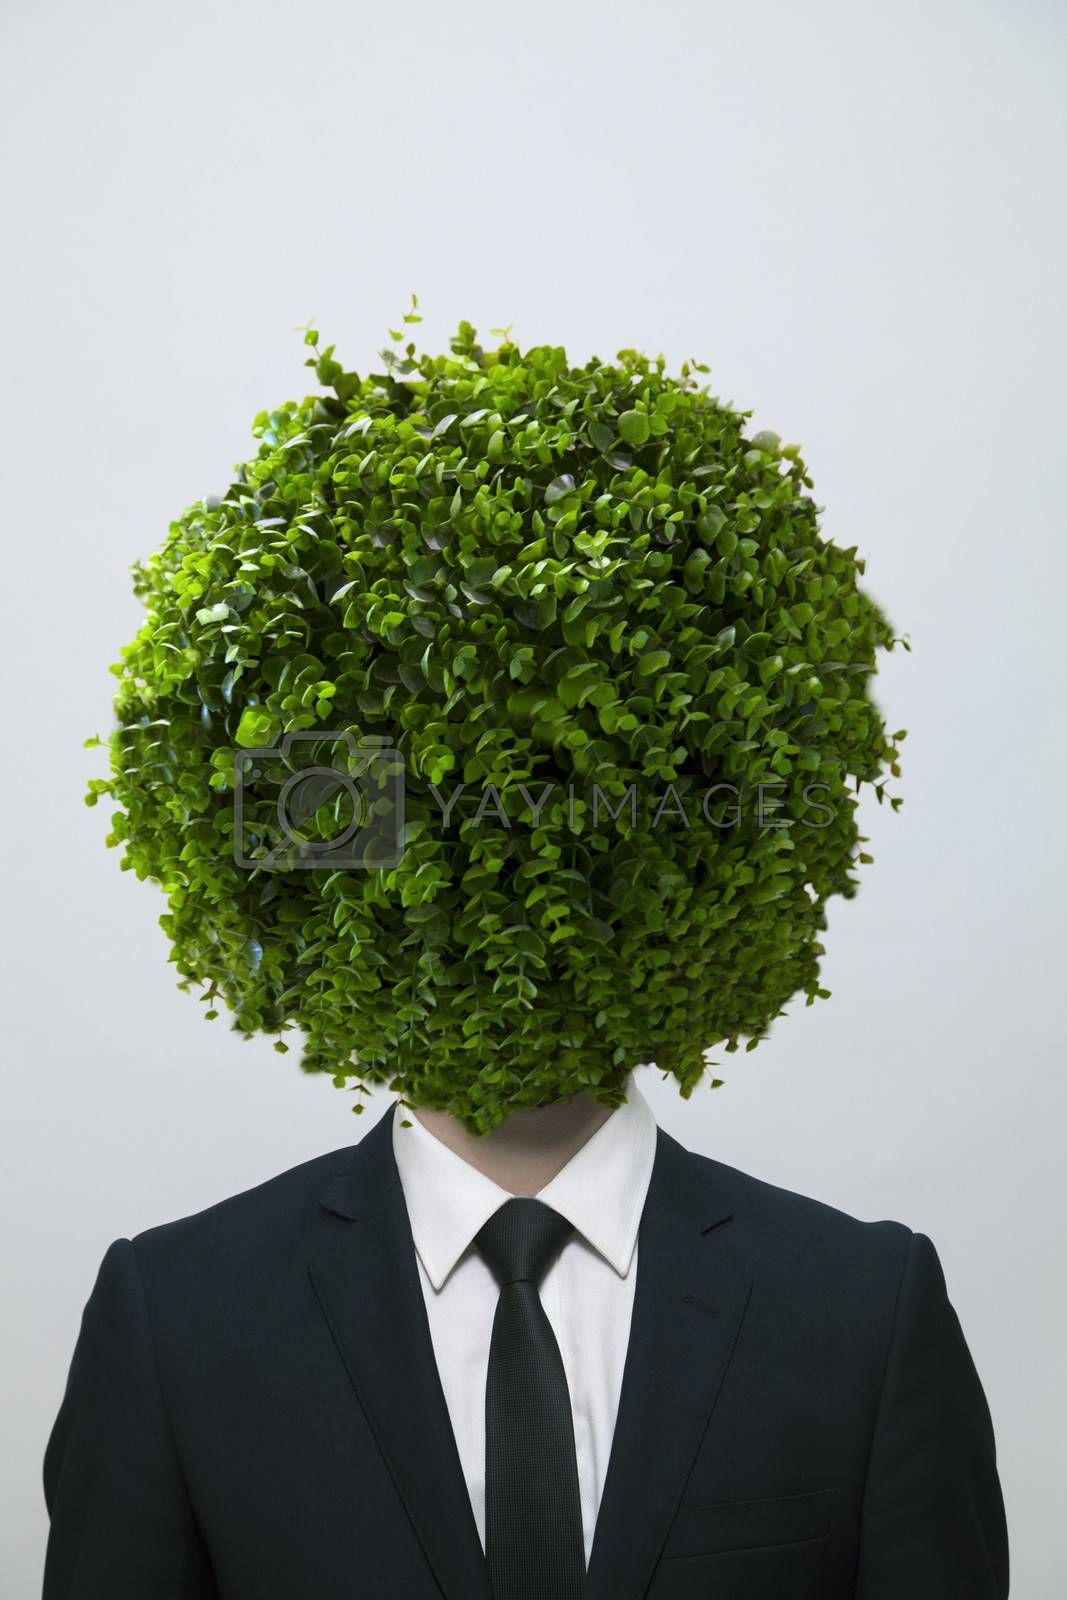 Businessman with a circular bush obscuring his face, studio shot by XiXinXing